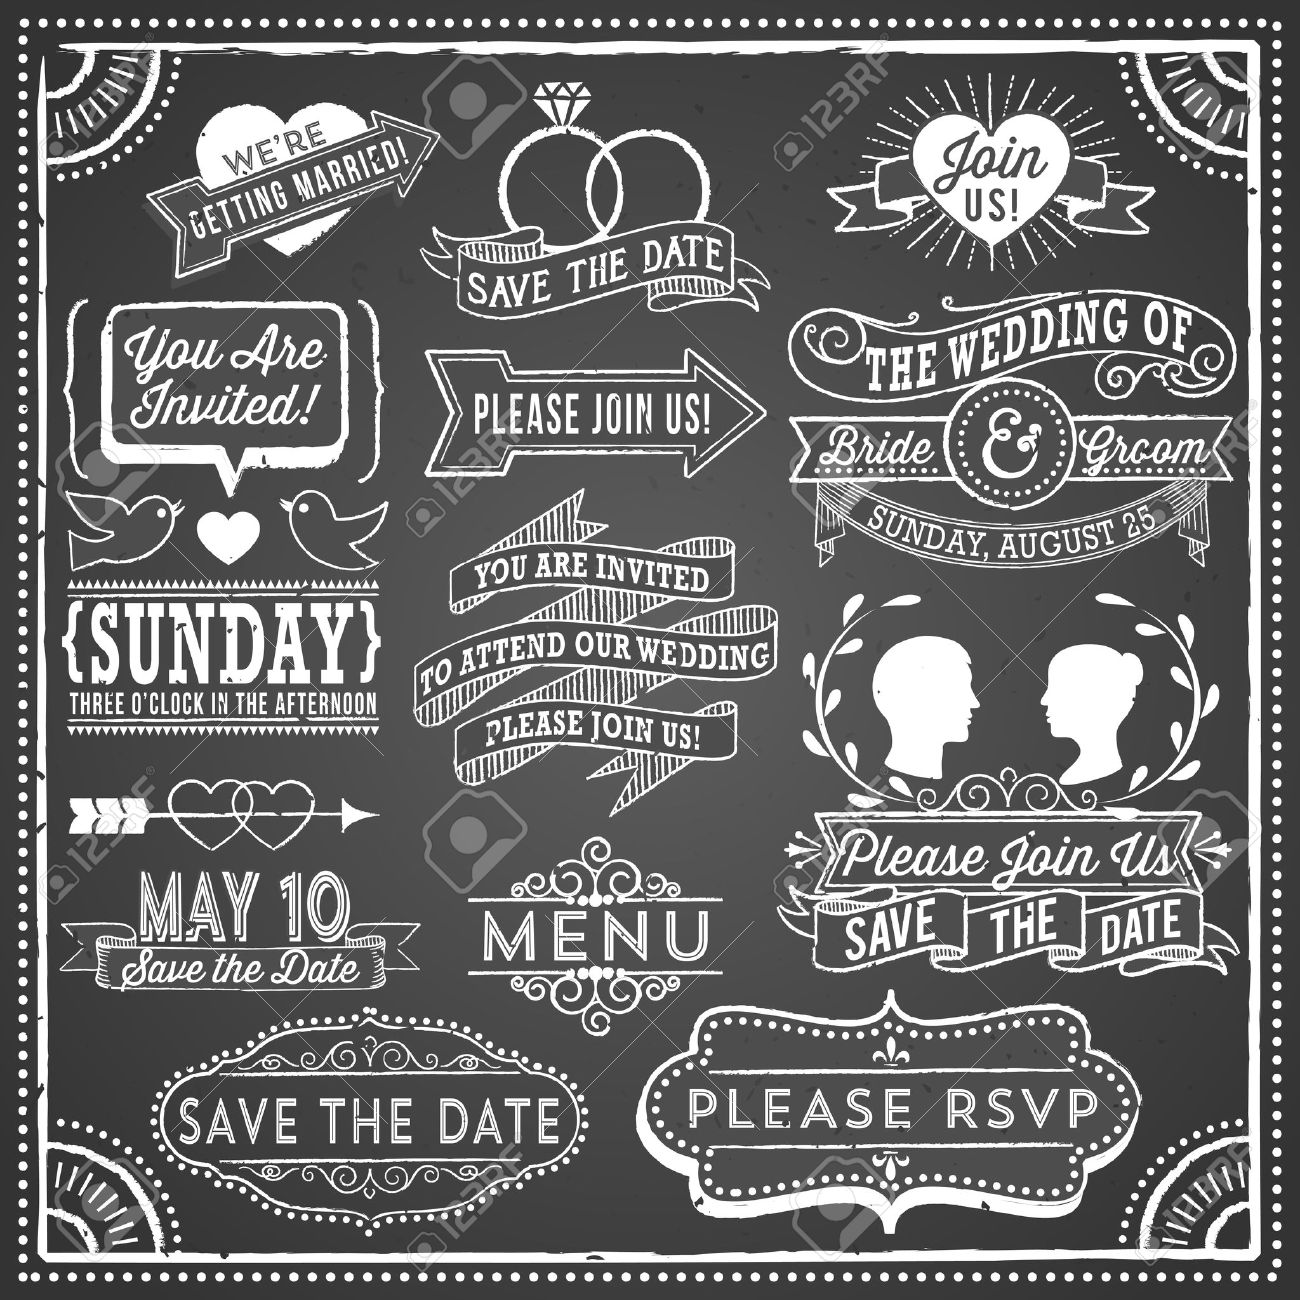 Rustic Chalkboard Wedding Invitations Choice Image Party Invitation Images Ideas